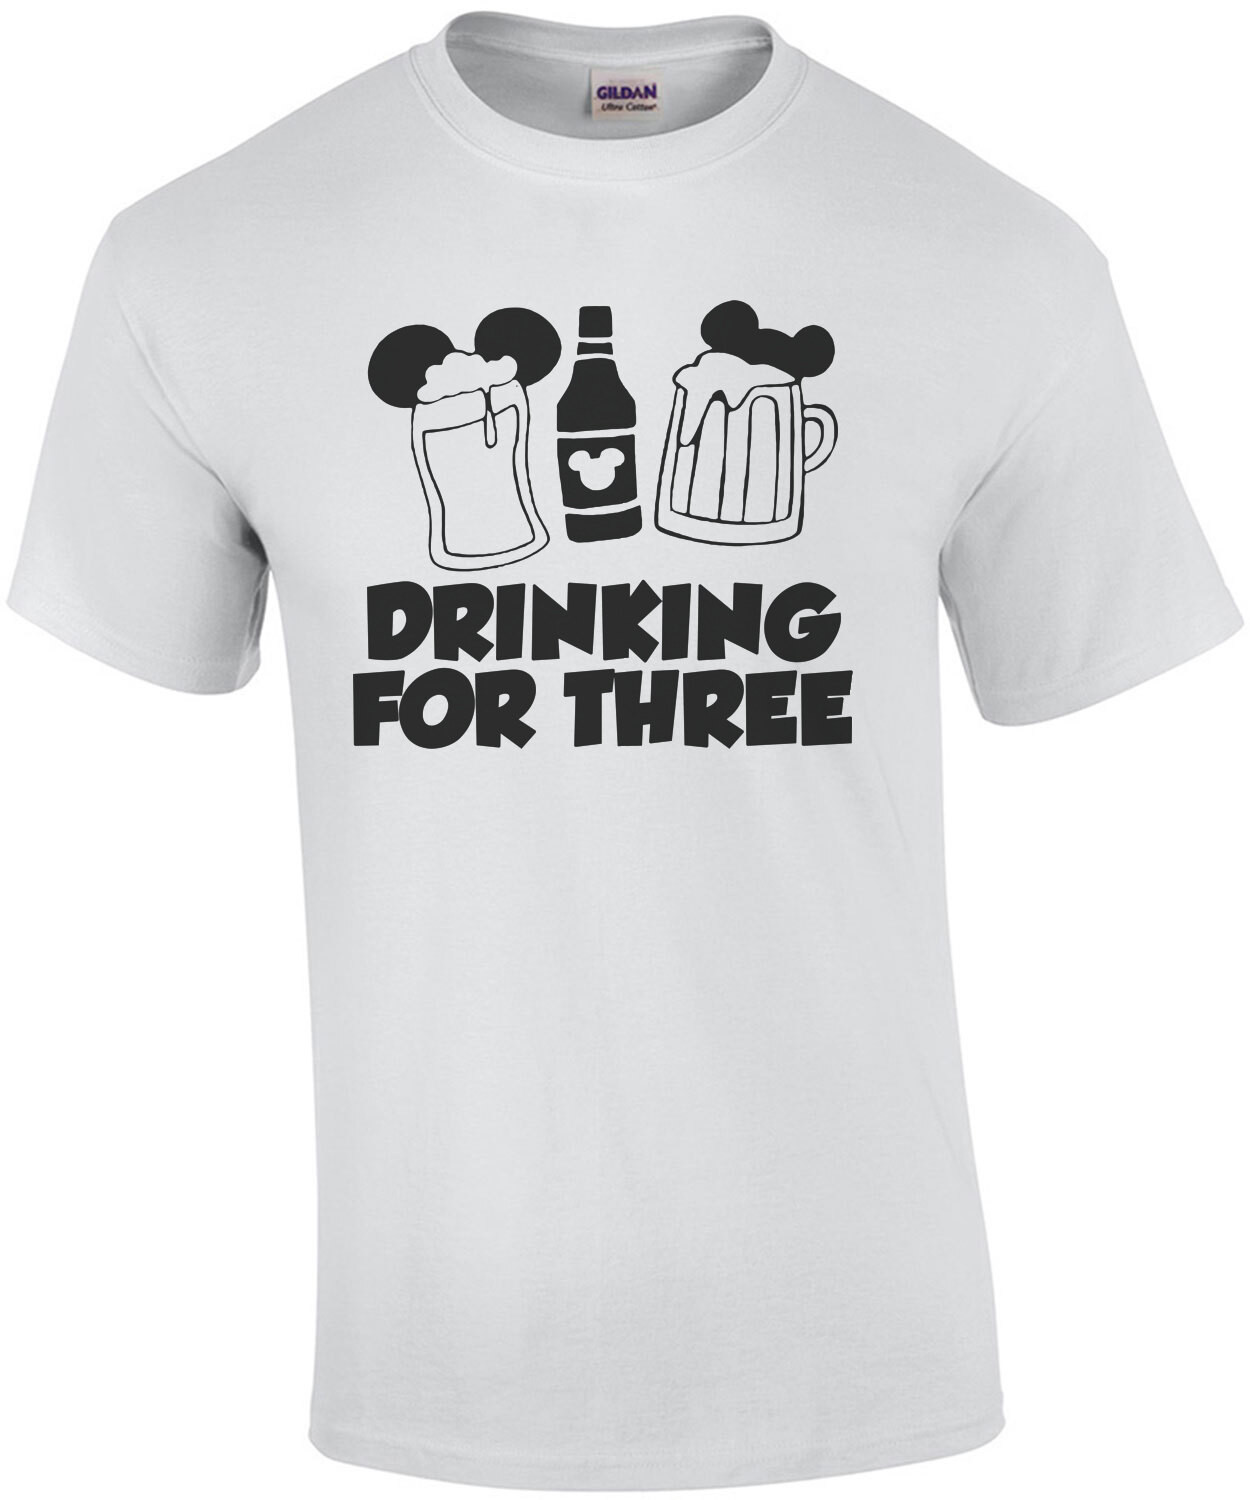 Drinking for 3 - Disney couples pregnancy t-shirt